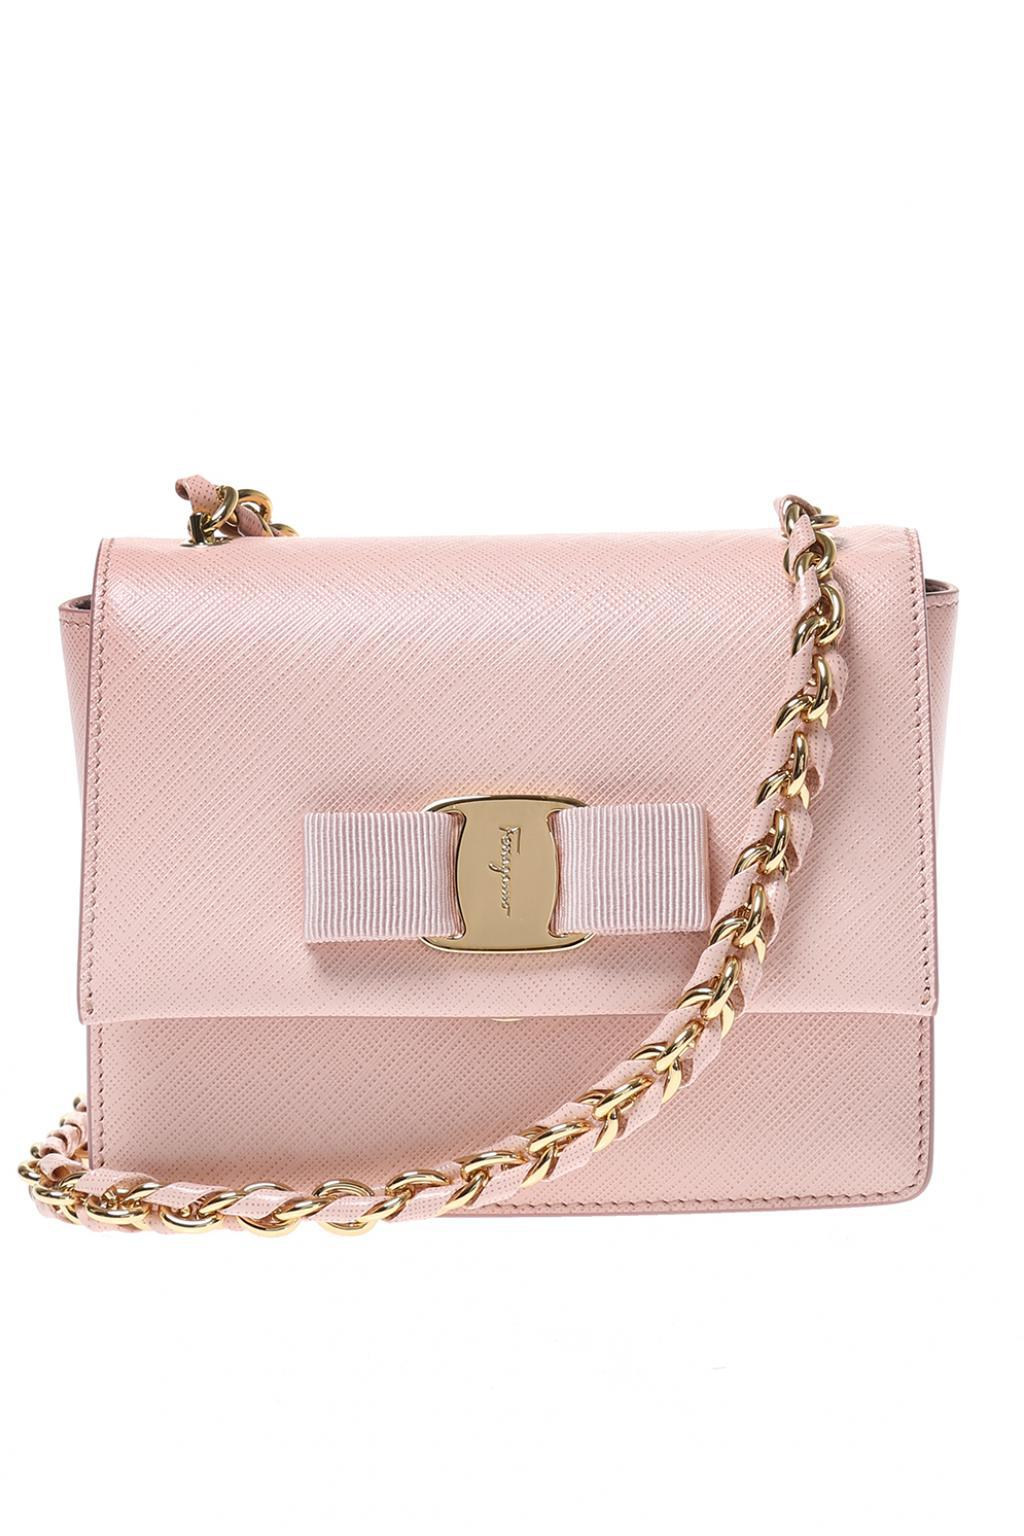 2f1884fafaeb Lyst - Ferragamo  ginny  Leather Shoulder Bag in Pink